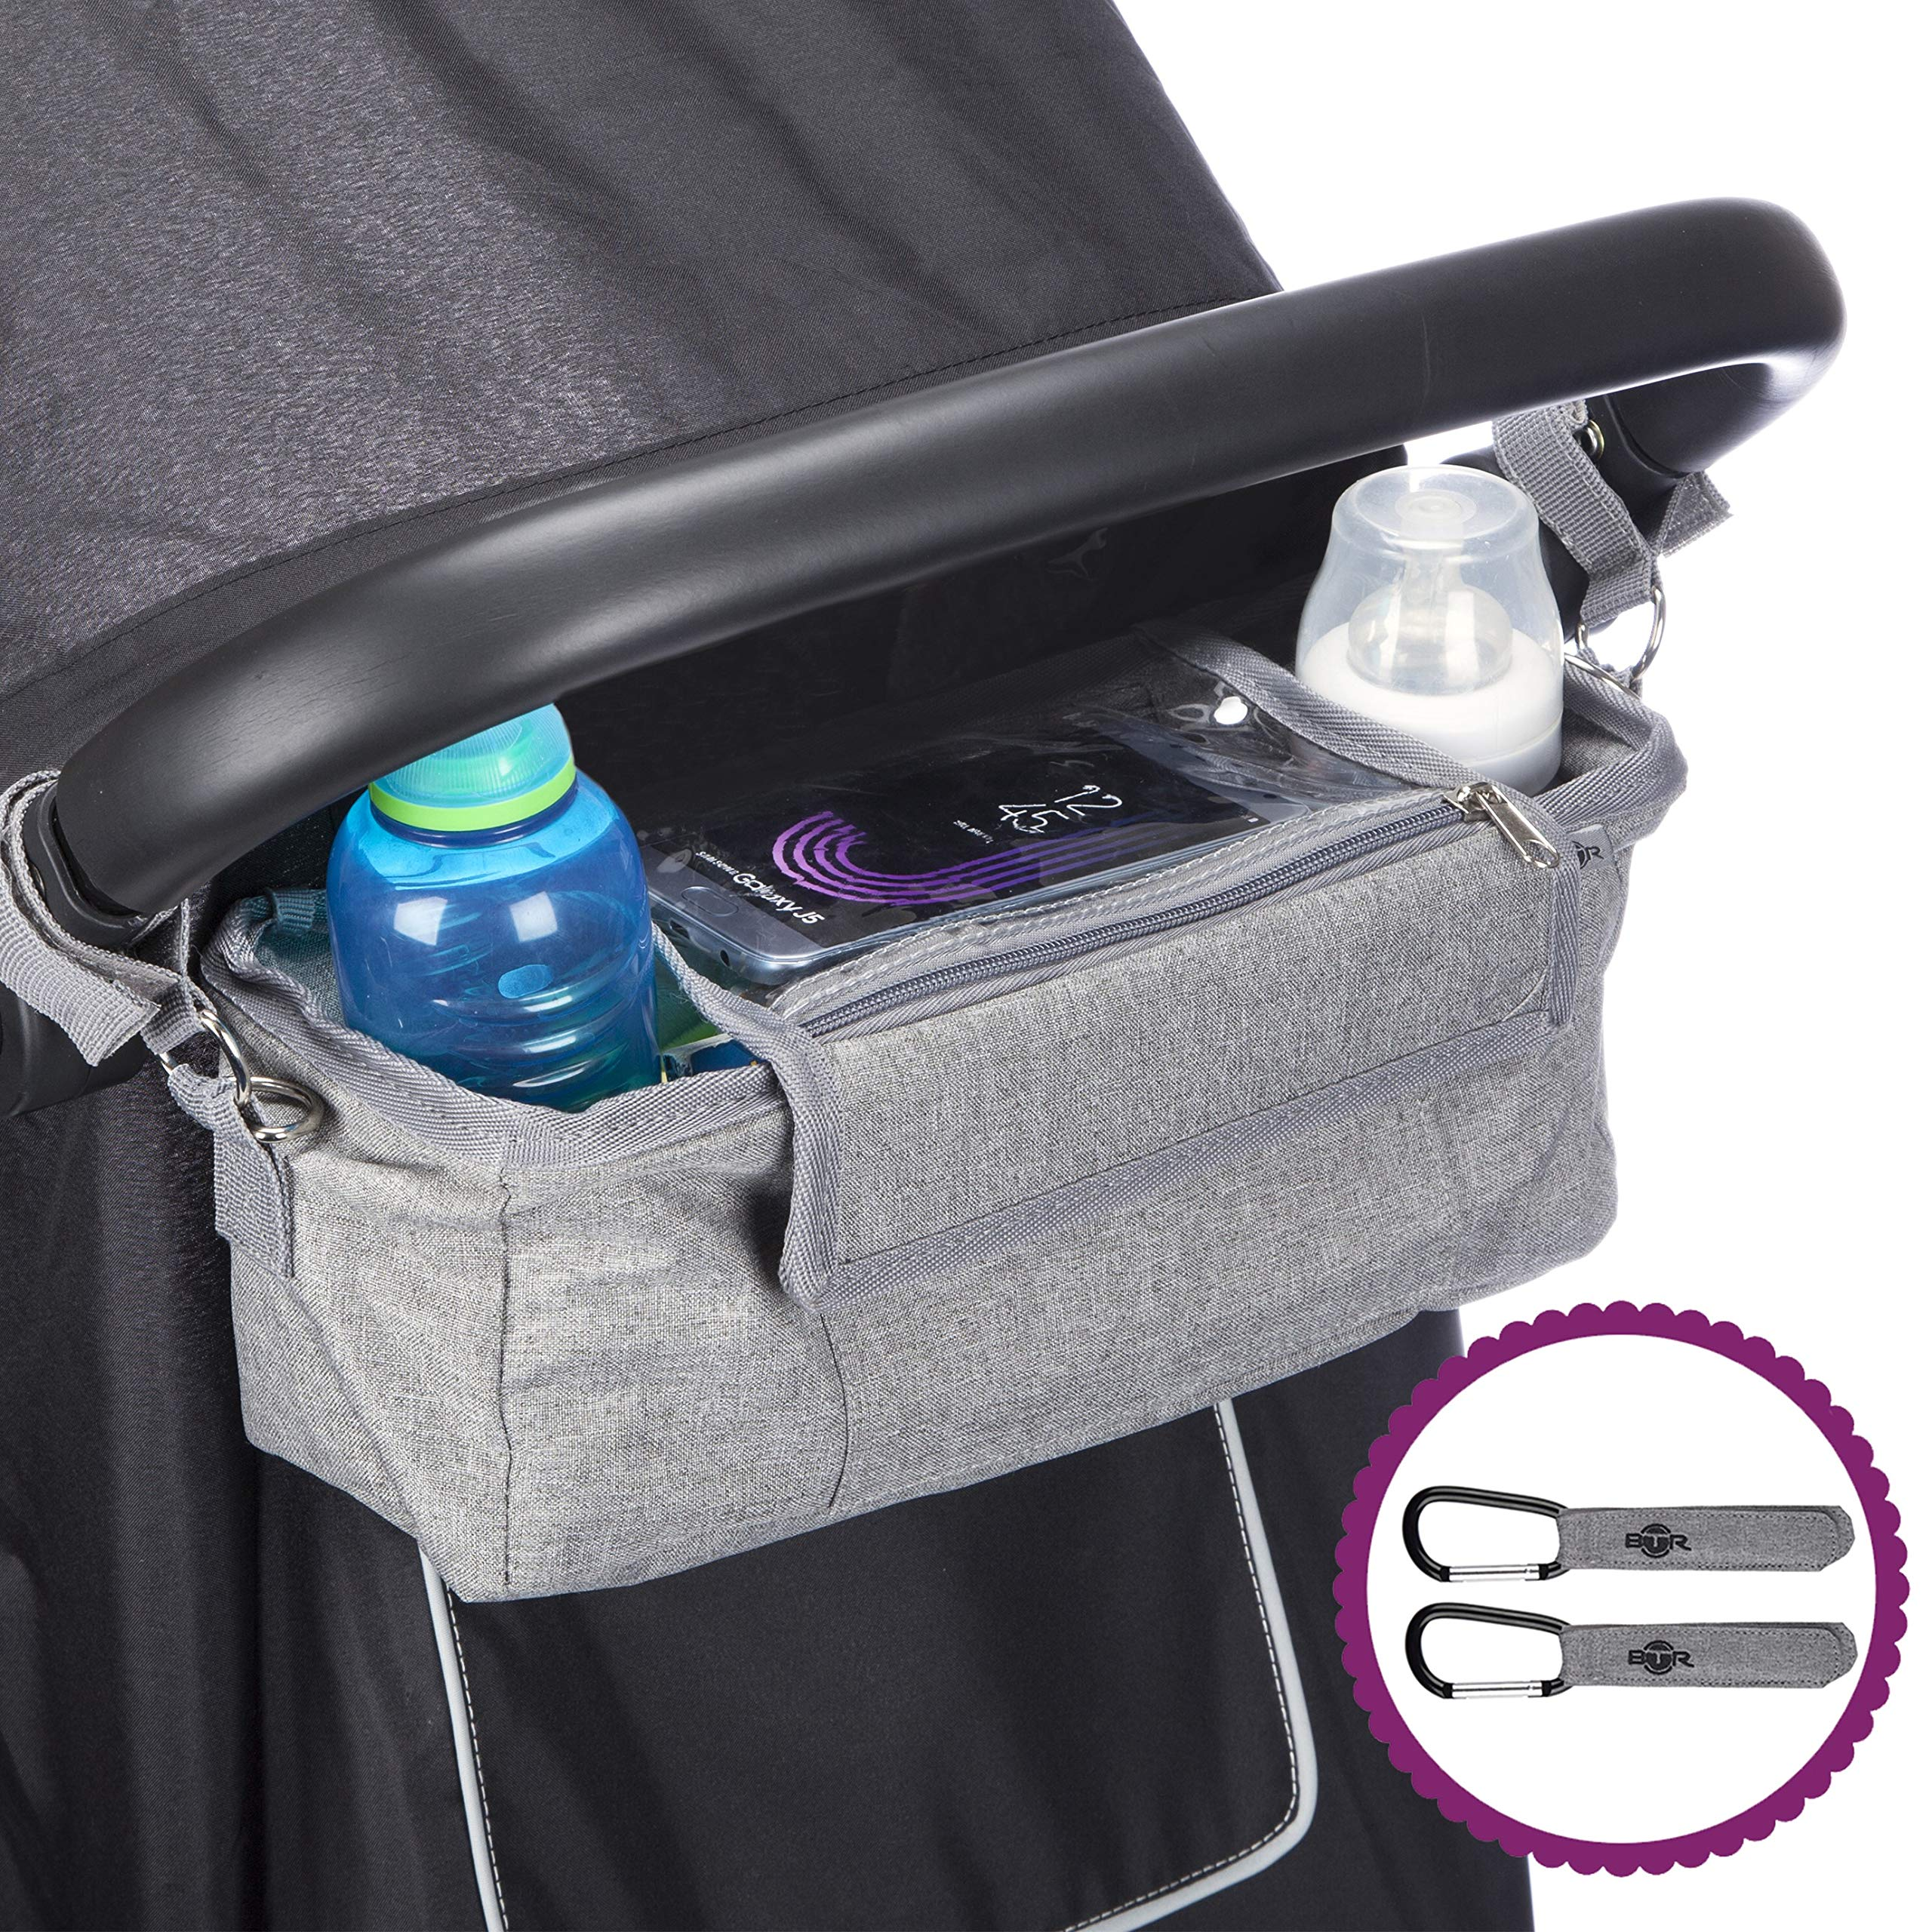 BTR Buggy Organiser Pram Bag /& Waterproof Cover /& Phone Pocket /& 2 x Pram Hooks